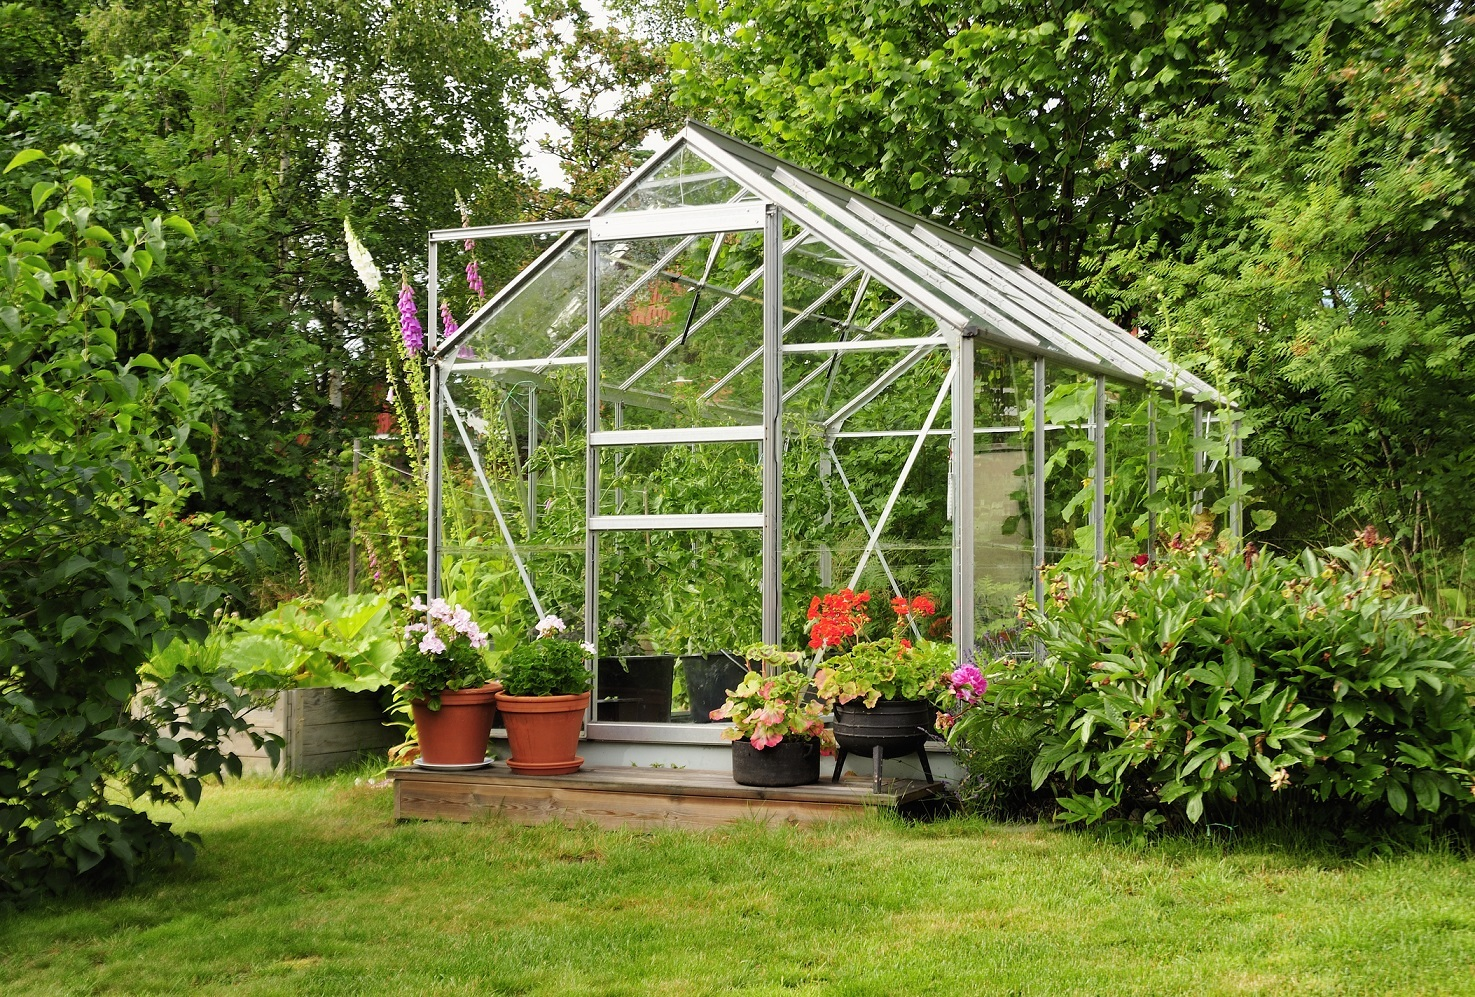 A green house full of flowers and plants